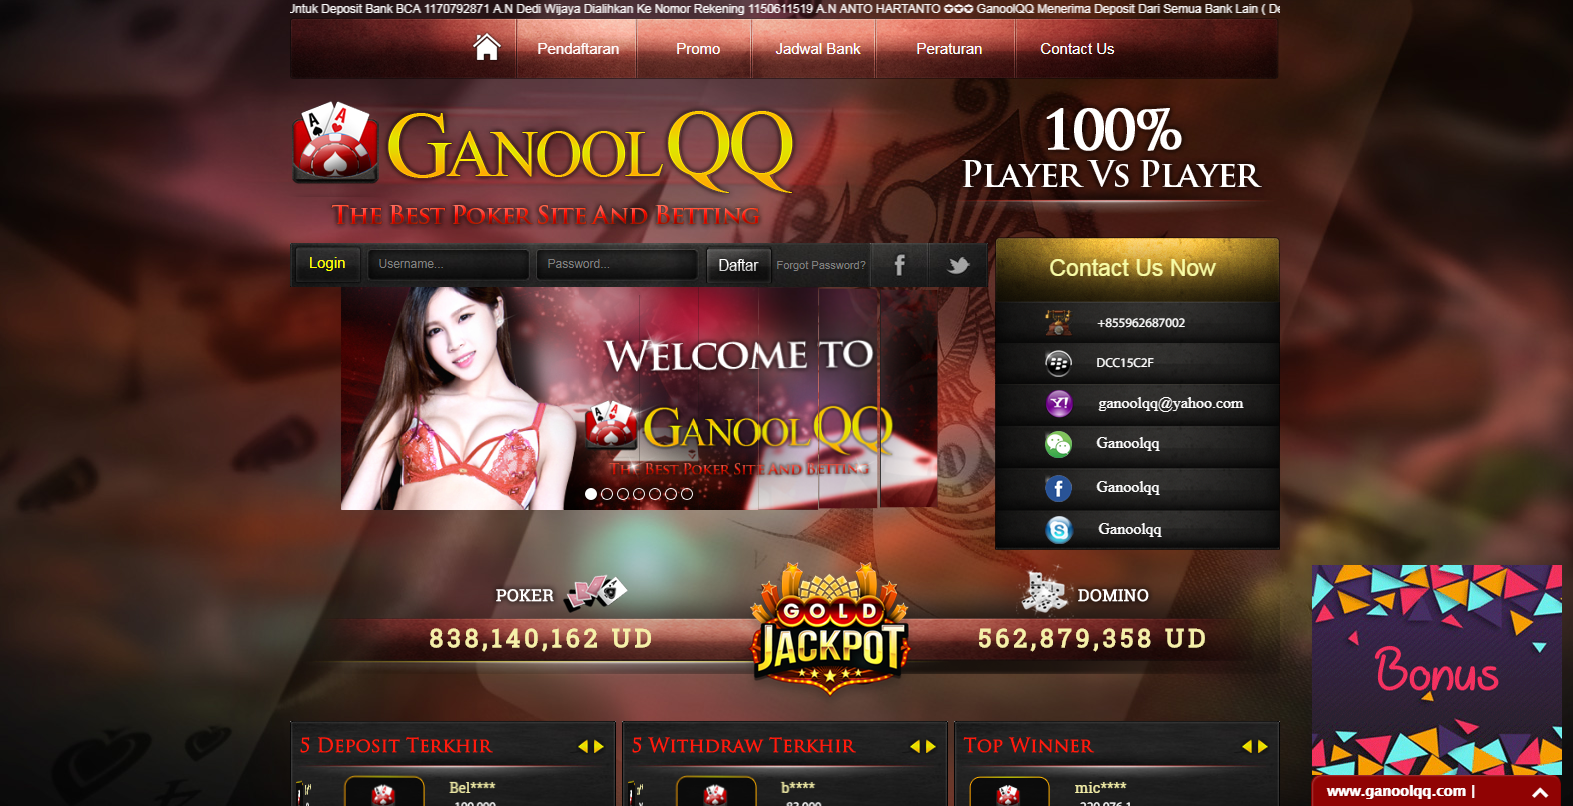 Win Real Money Online - Online Gambling